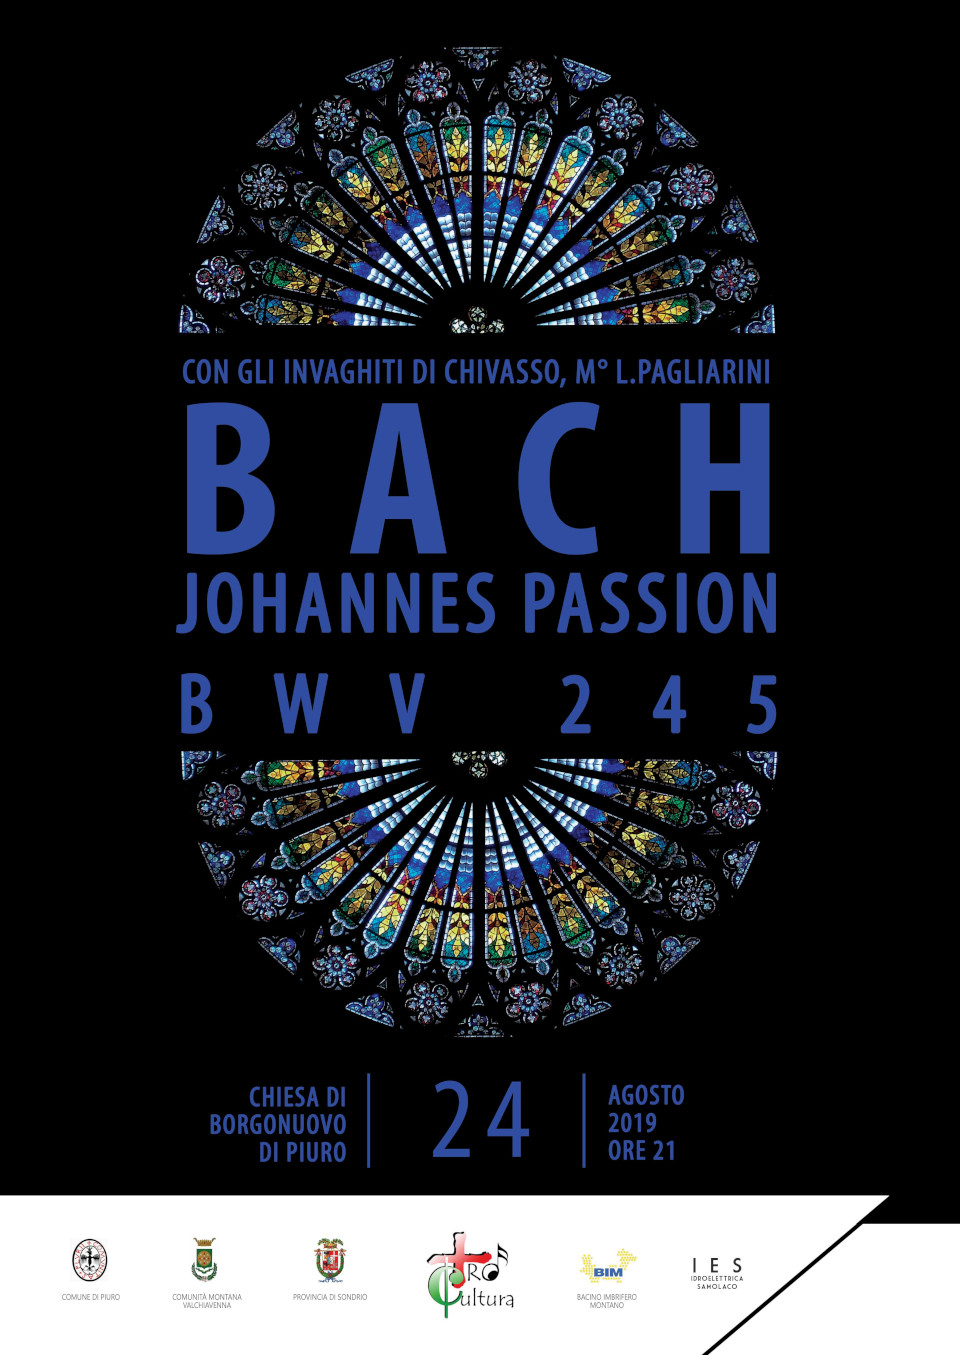 Bach-Jphannes Passion BWV 245